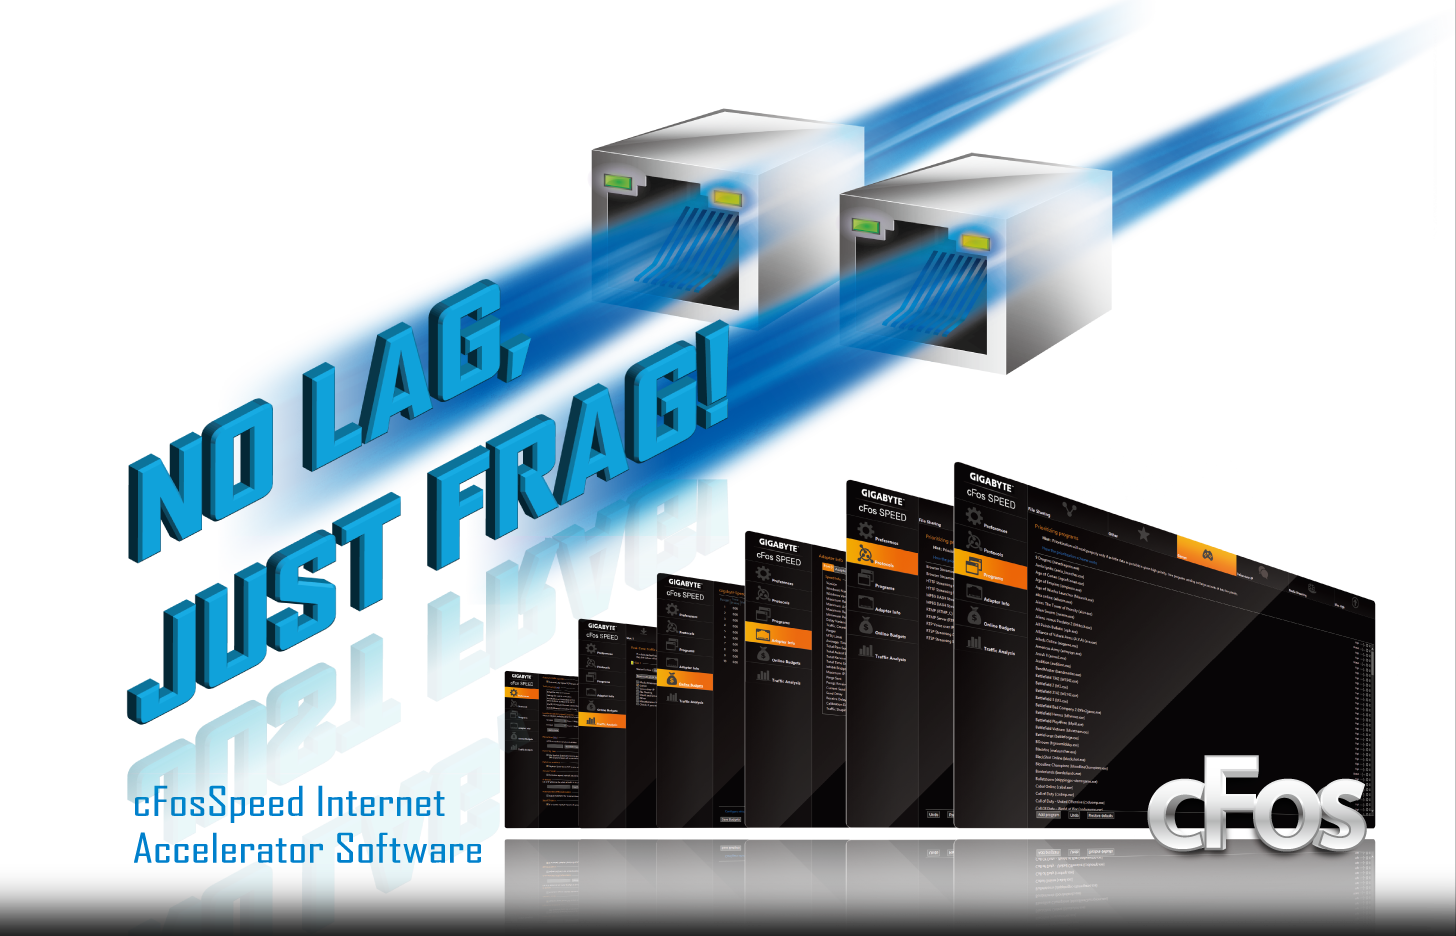 Ga Z170x Designare Rev 10 Motherboard Gigabyte Global Sata To Usb Wiring Diagram With Cfosspeed Features Advanced Technologies Help Deliver Better Network Responsiveness In Crowded Lan Environments And Allows Optimization